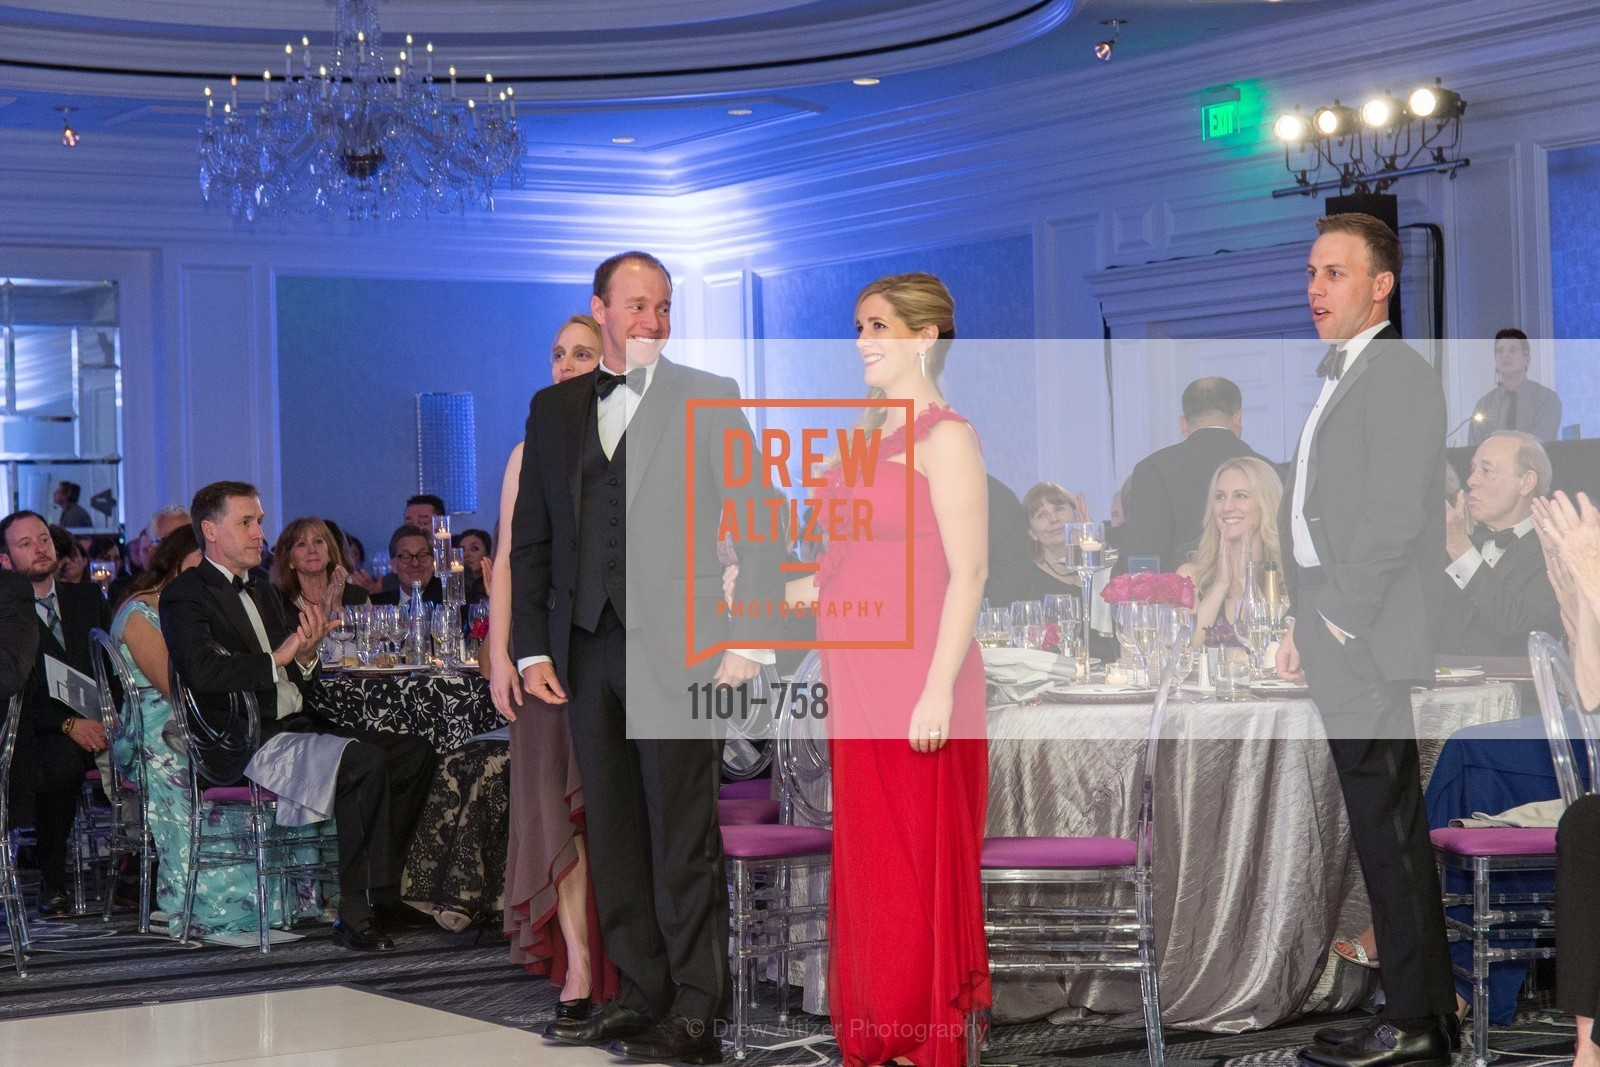 Trevor Sagan, Lauren Sagan, JUVENILE DIABETES RESEARCH FOUNDATION  Hope Gala, US, May 30th, 2015,Drew Altizer, Drew Altizer Photography, full-service agency, private events, San Francisco photographer, photographer california